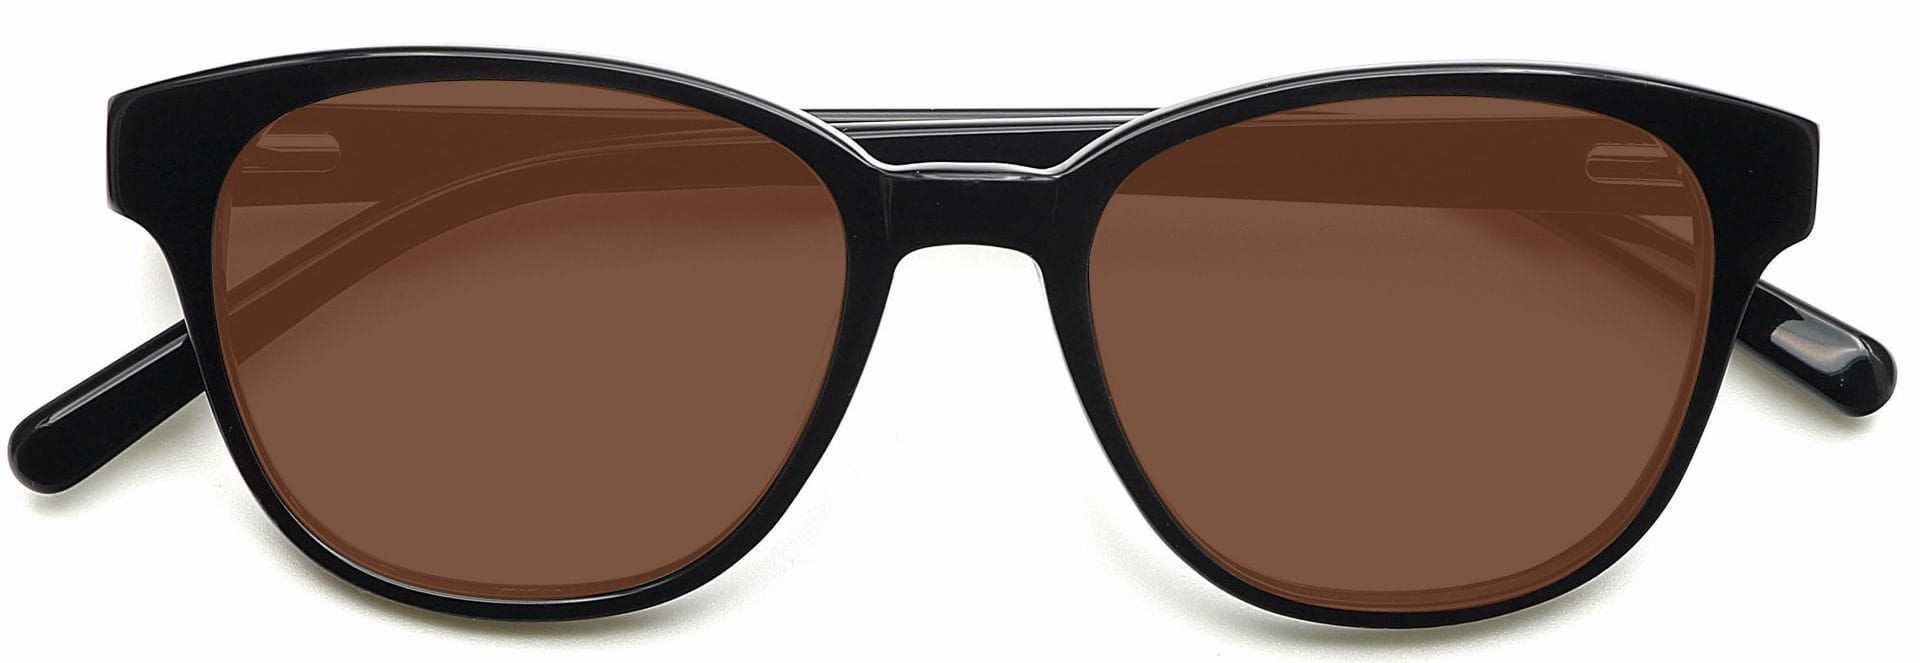 Elan Classic Square Reading Sunglasses - Black Frame With Brown Lenses